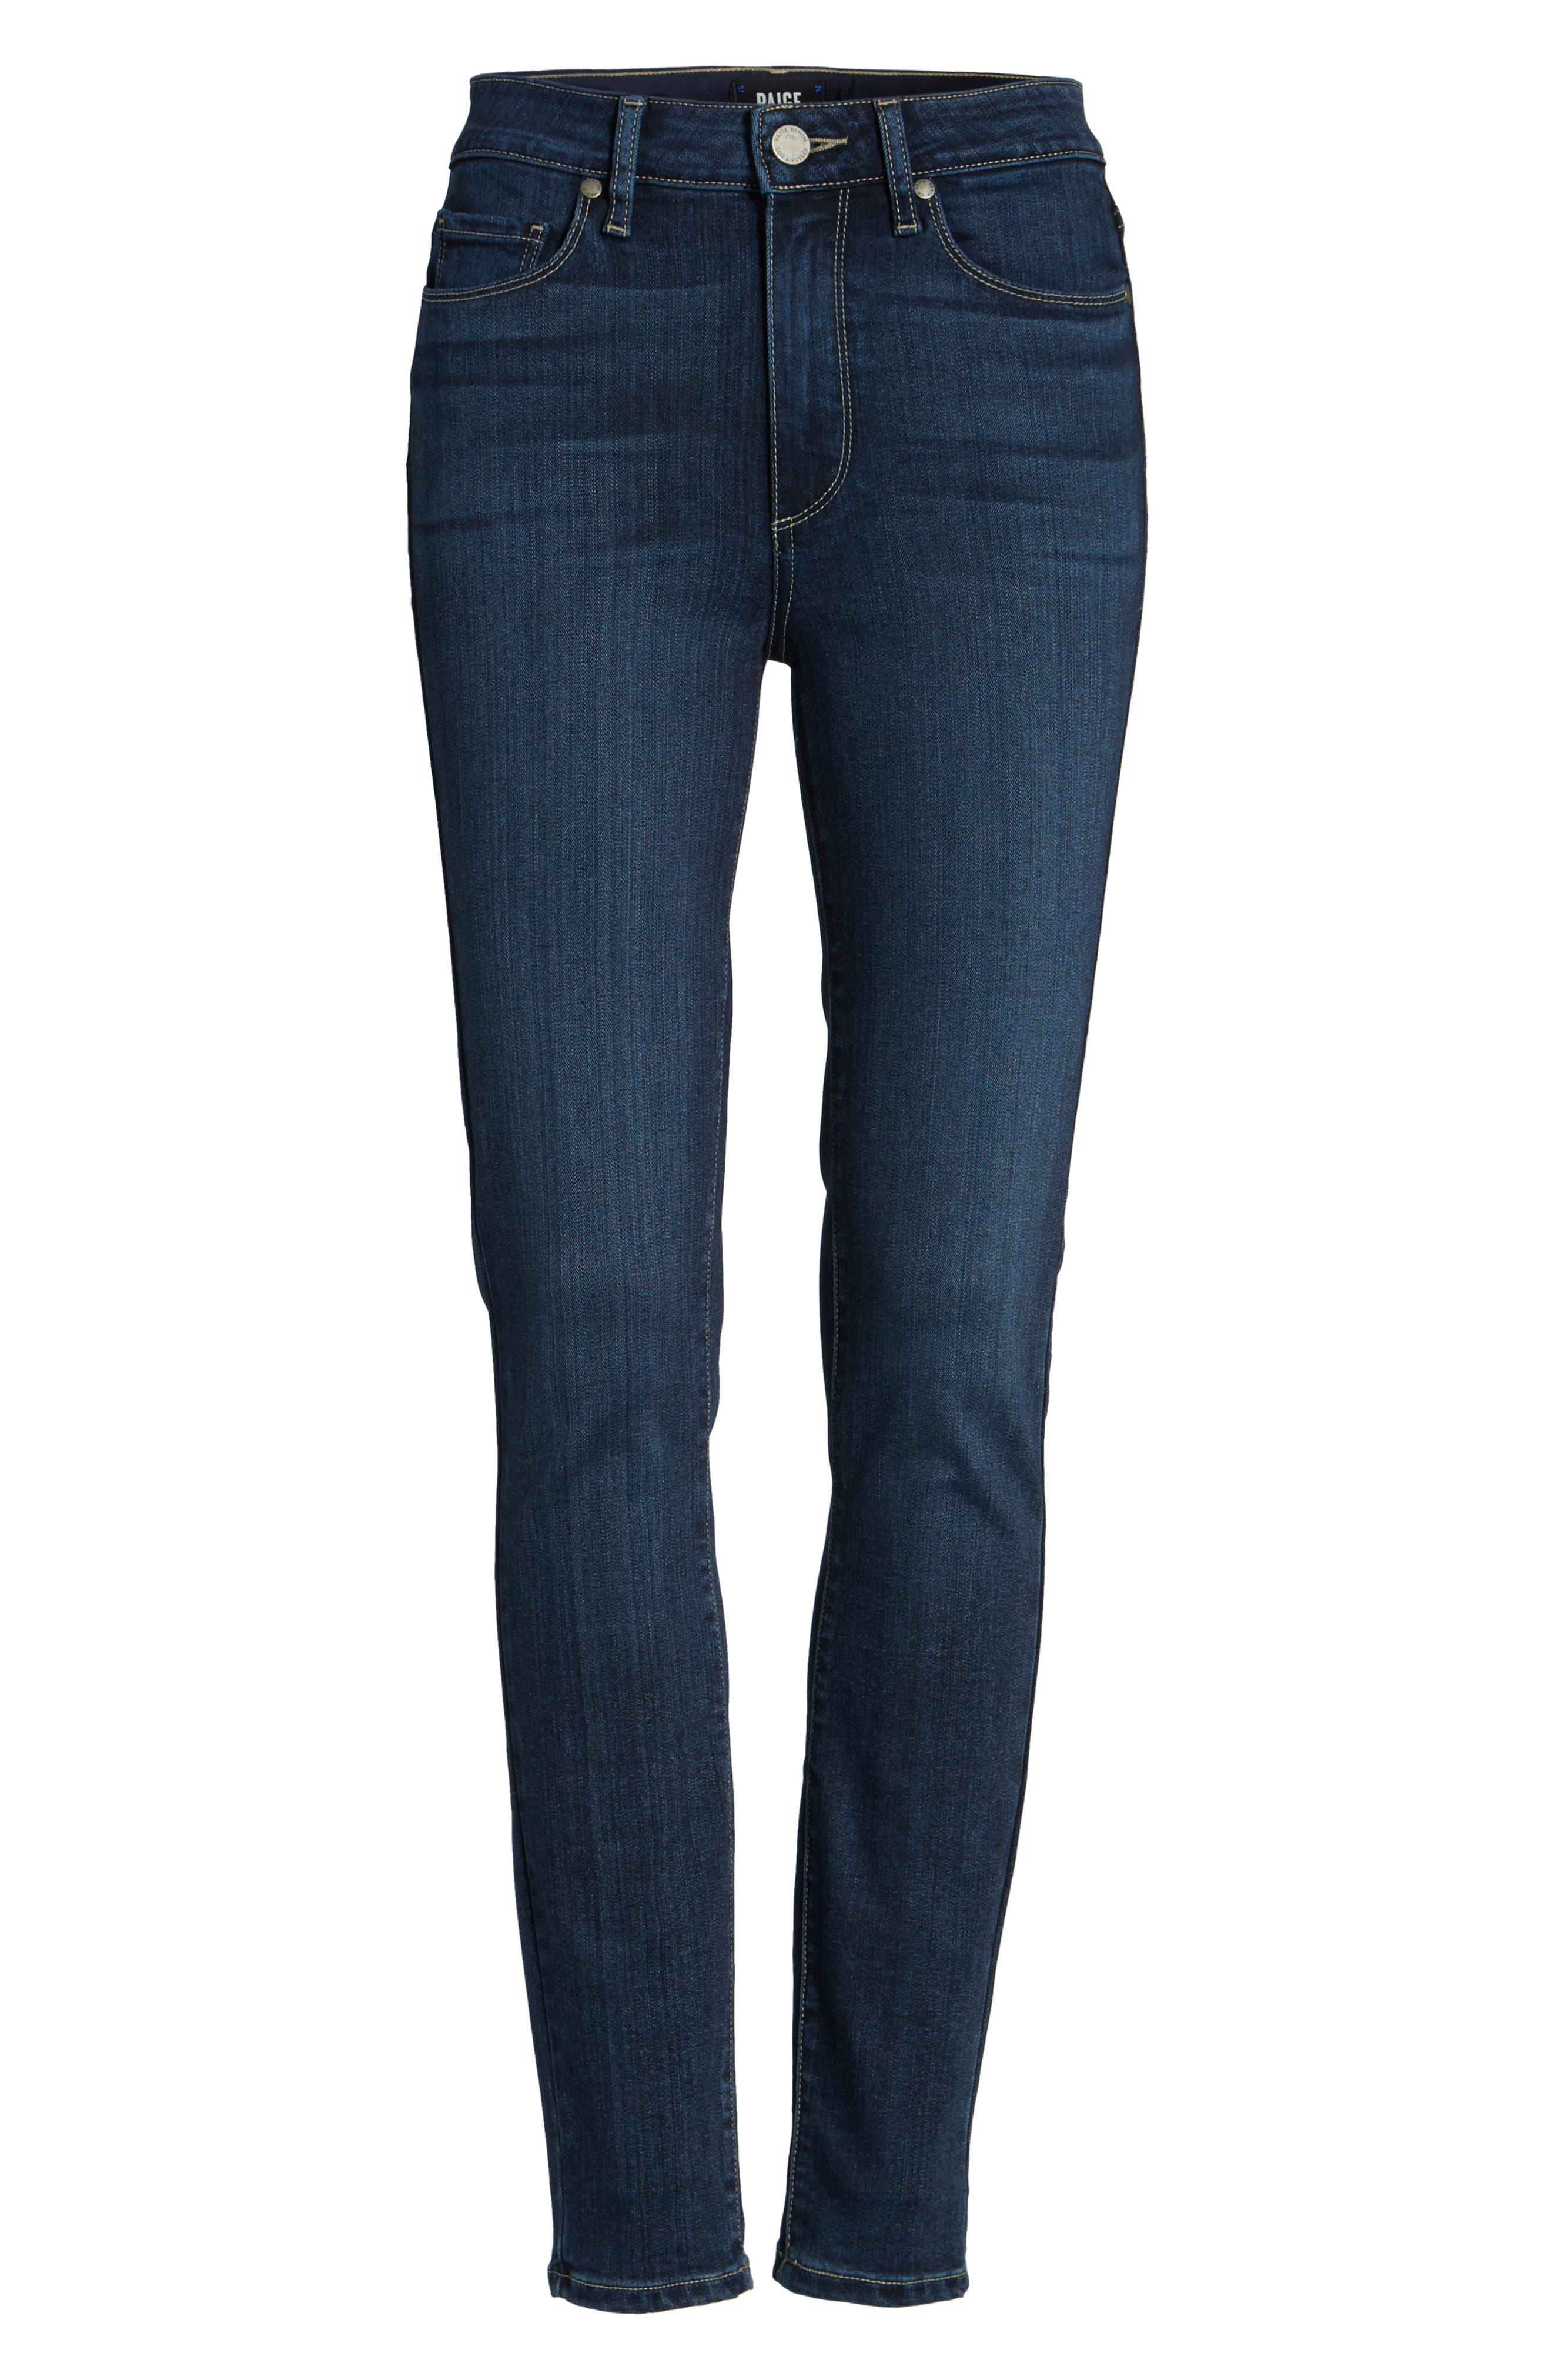 Transcend - Hoxton High Waist Ankle Skinny Jeans,                             Alternate thumbnail 6, color,                             CHARING